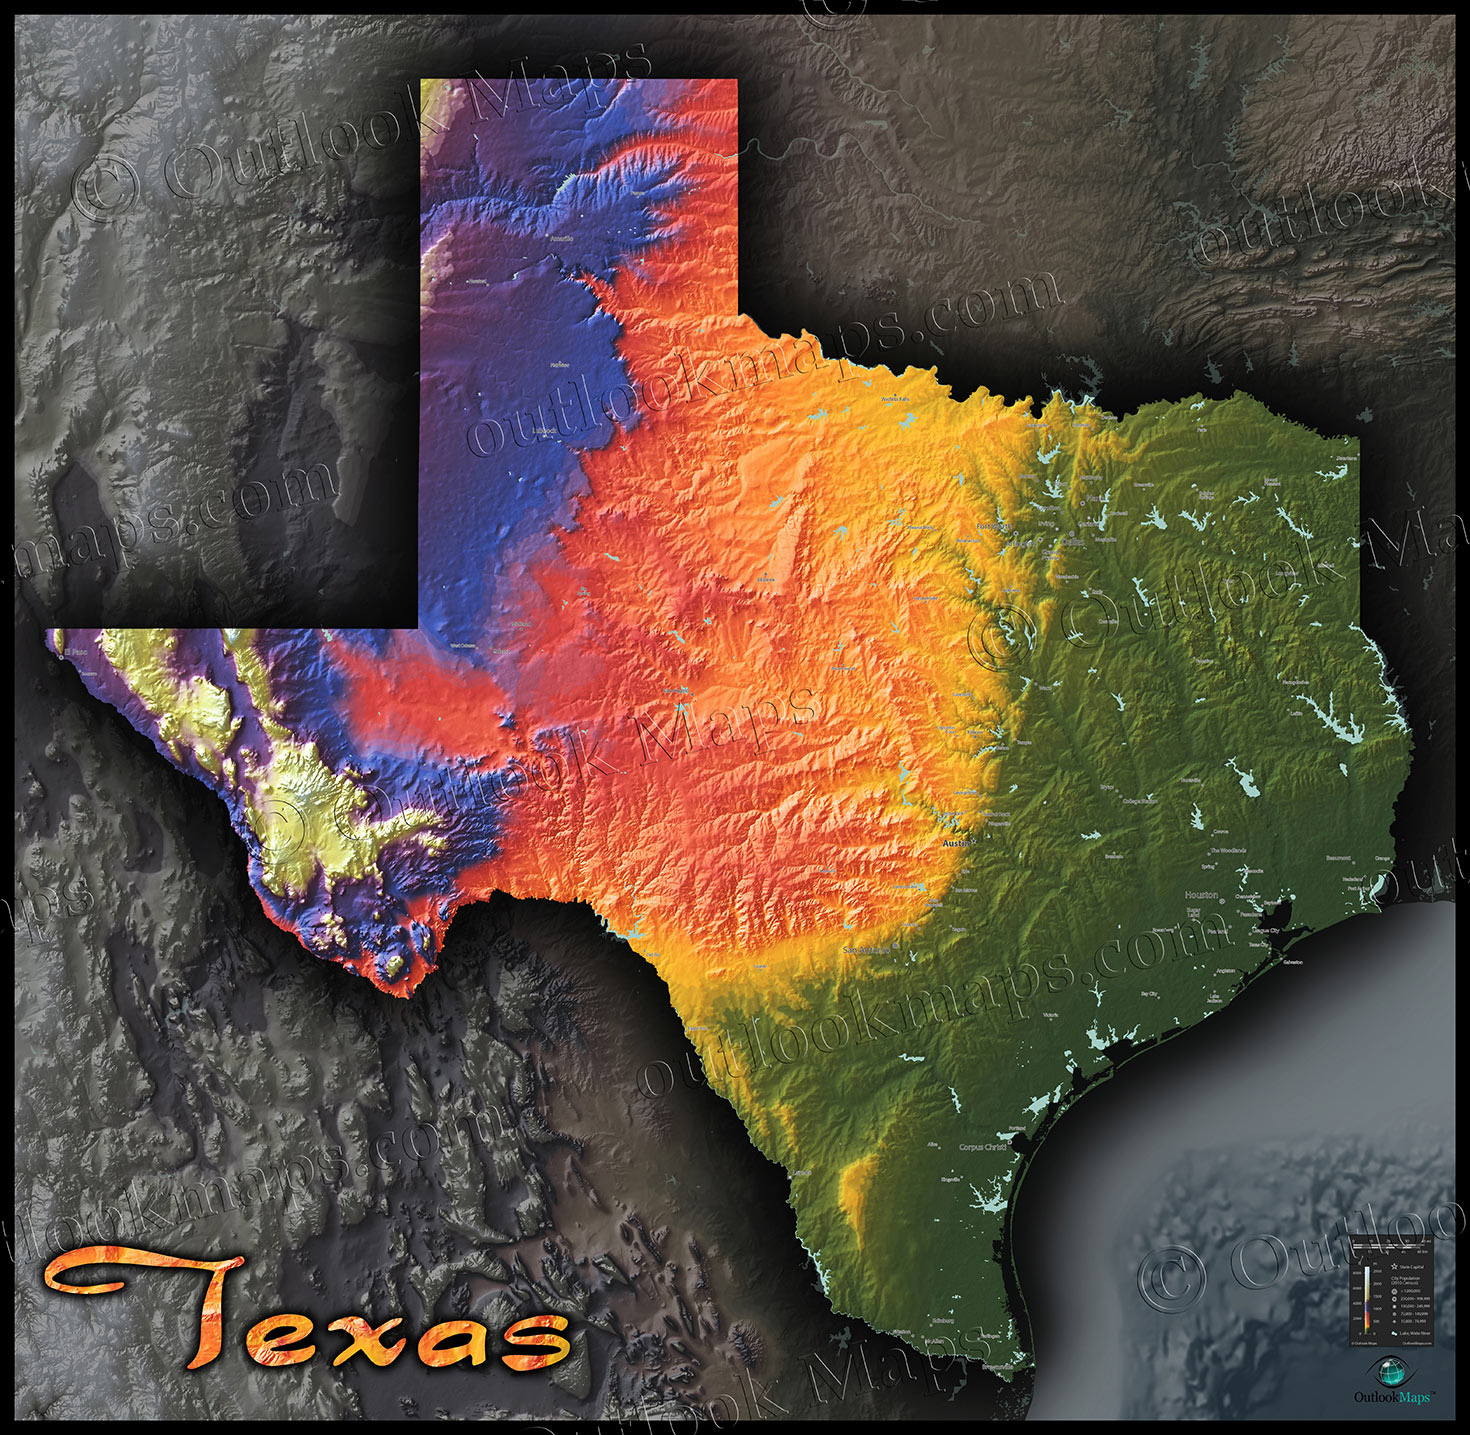 Elevation Map Of Texas Physical Texas Map | State Topography in Colorful 3D Style Elevation Map Of Texas